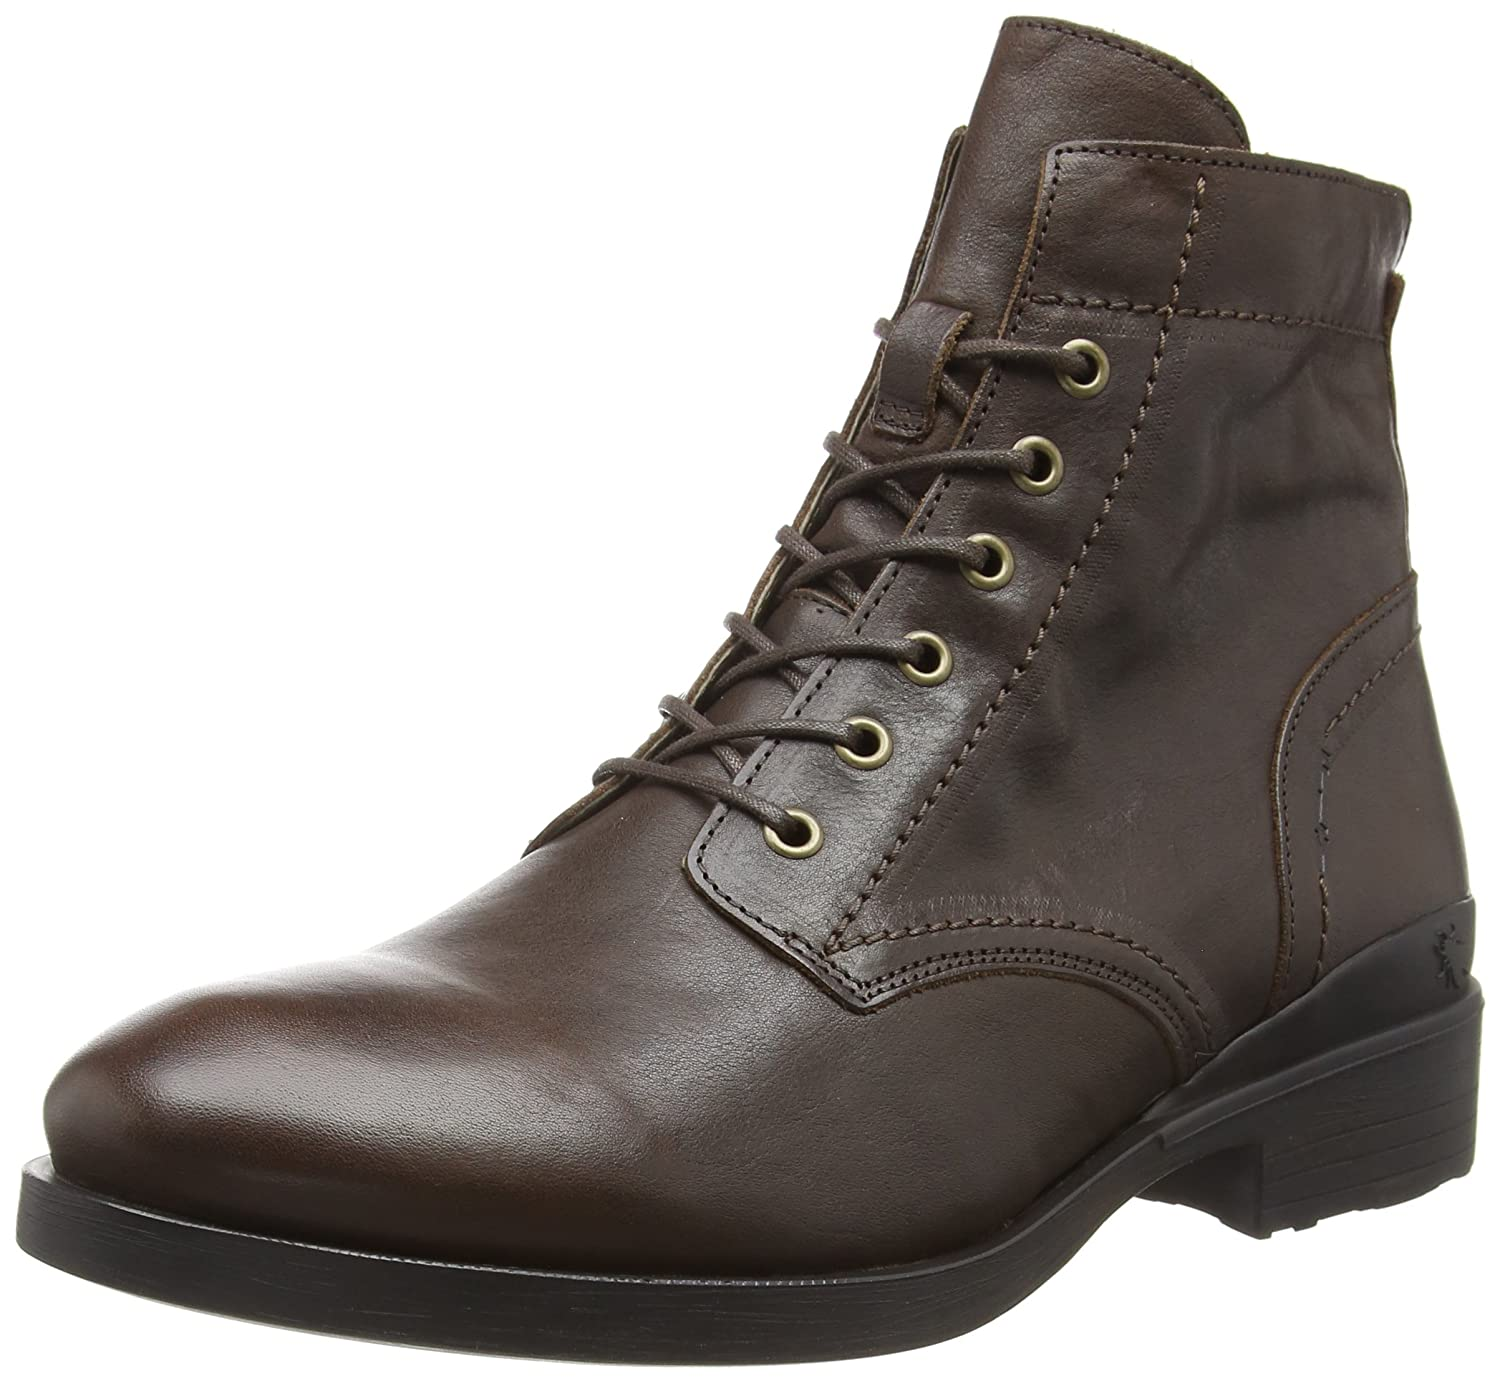 Fly London Marc343fly, Botas Clasicas para Hombre, Marrón (Brown 002), 40 EU